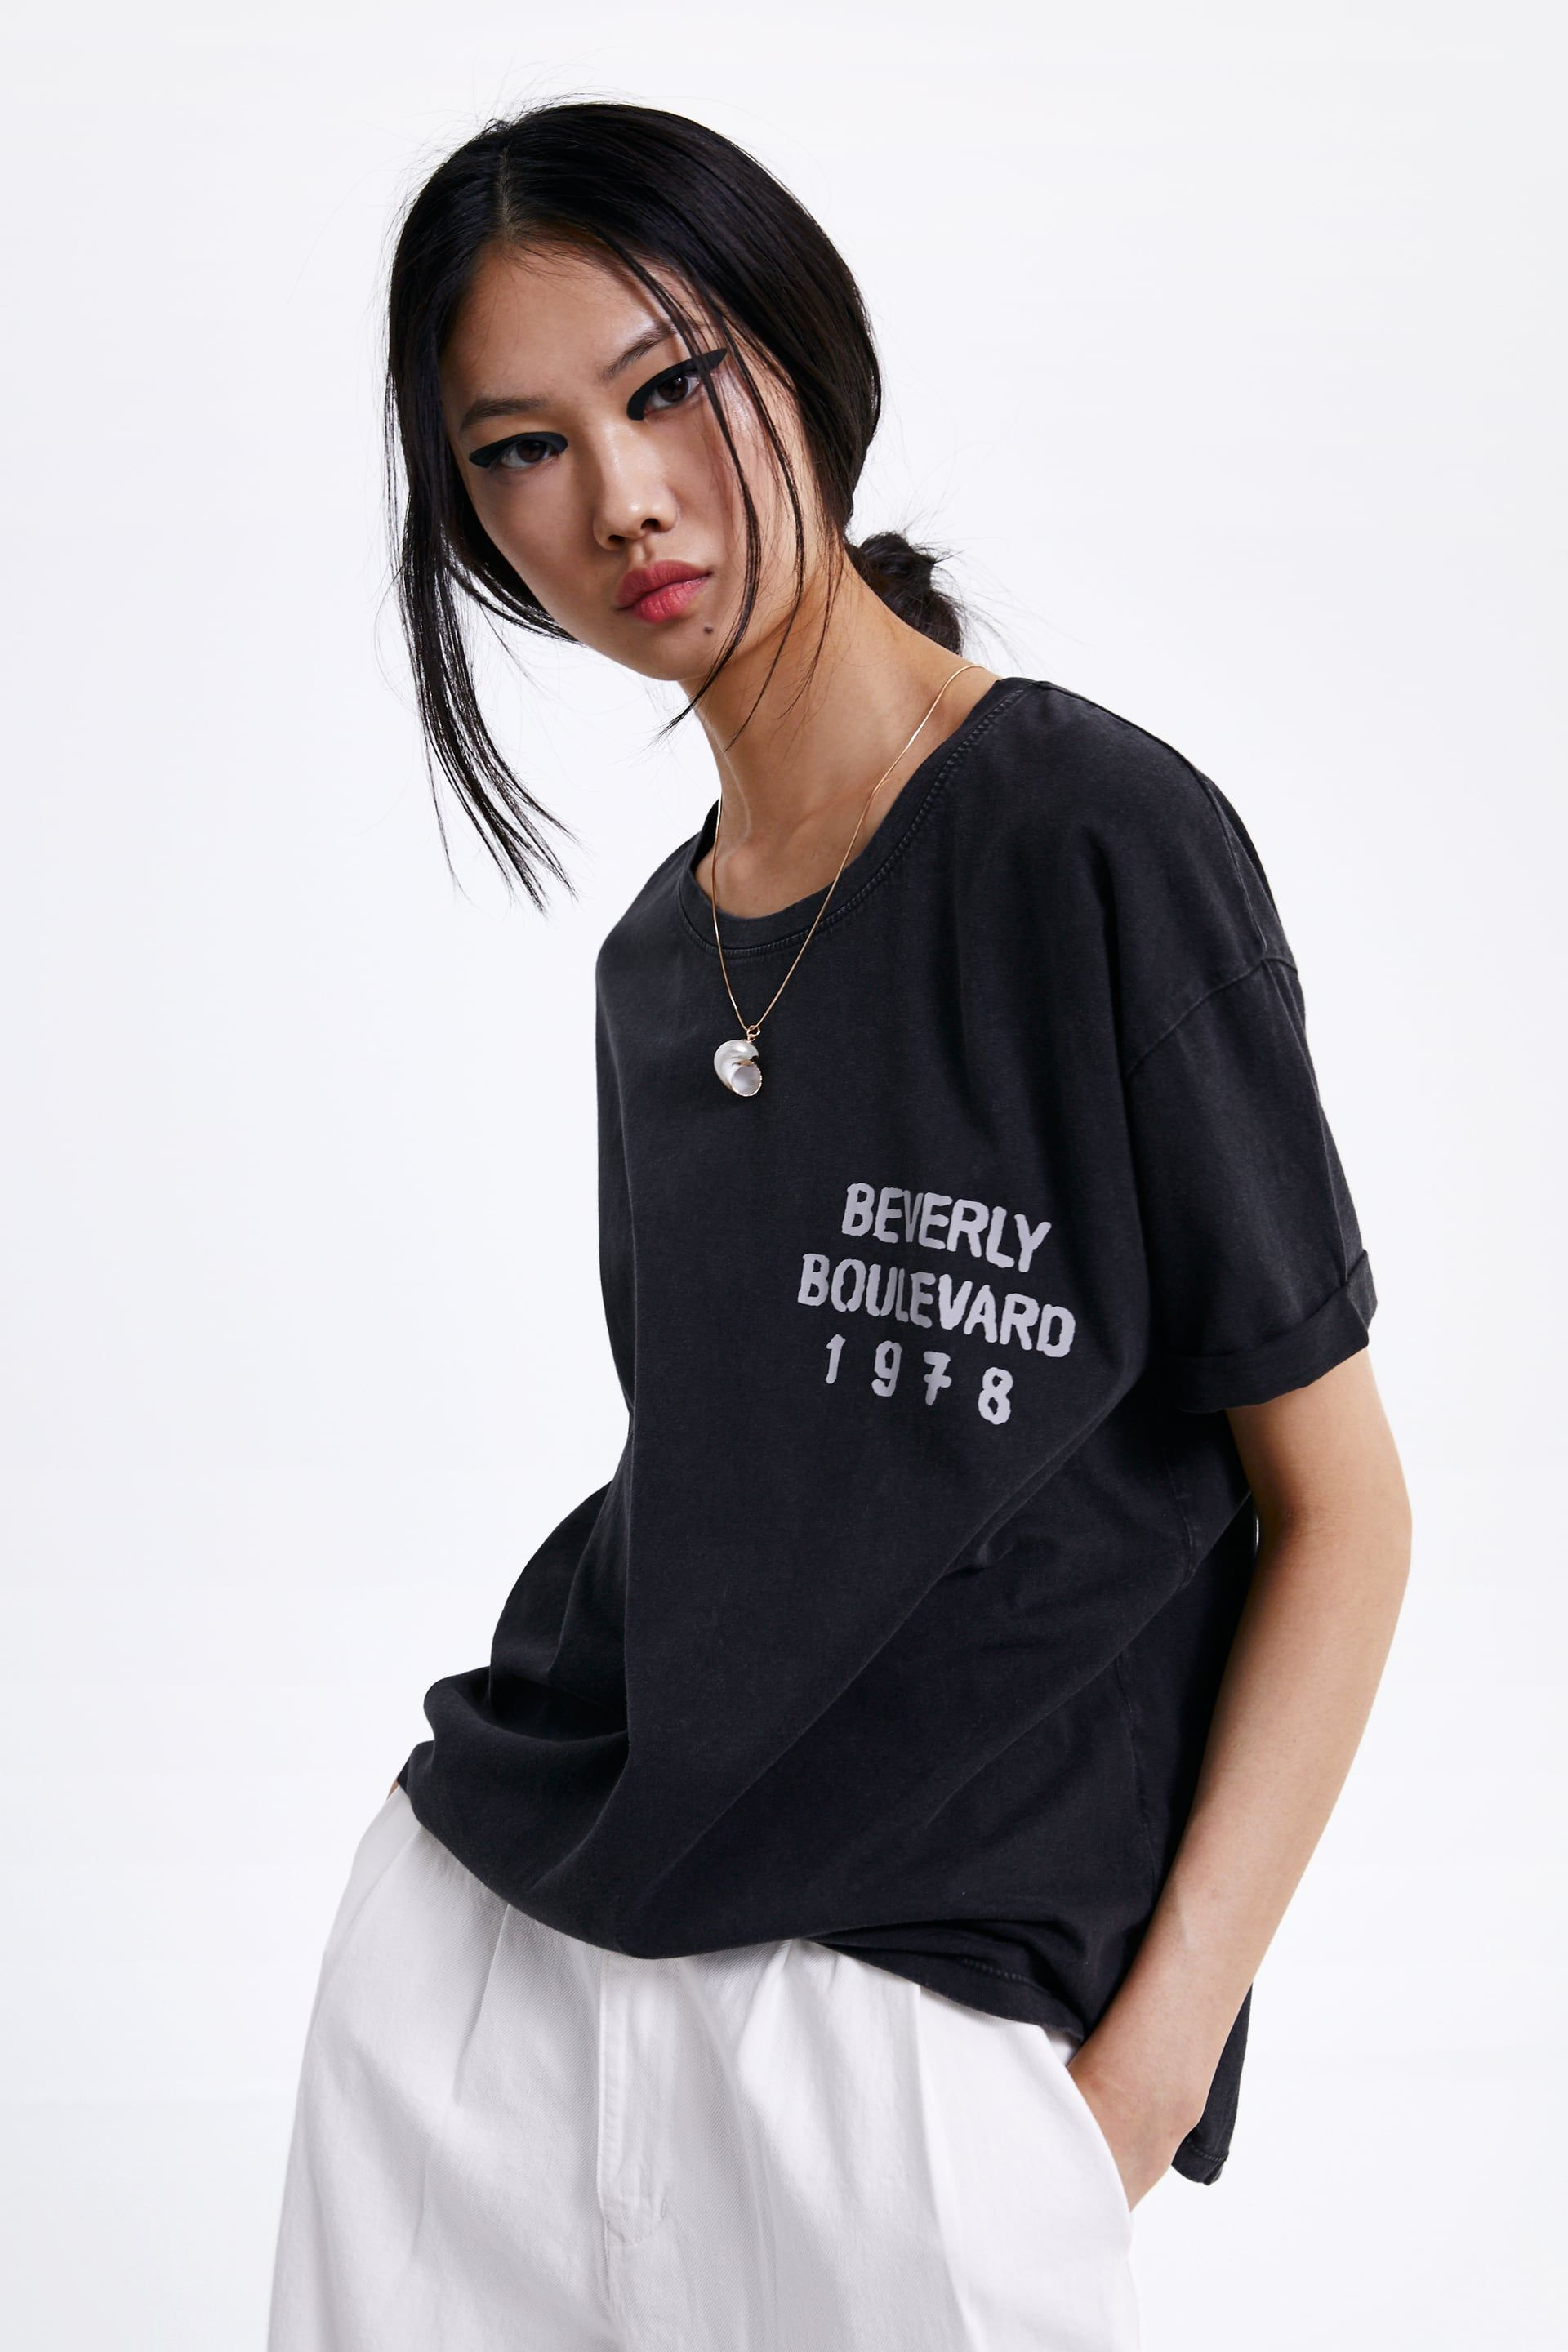 576409e6 T - SHIRT WITH TEXT-Printed graphics-T-SHIRTS-WOMAN   ZARA United States